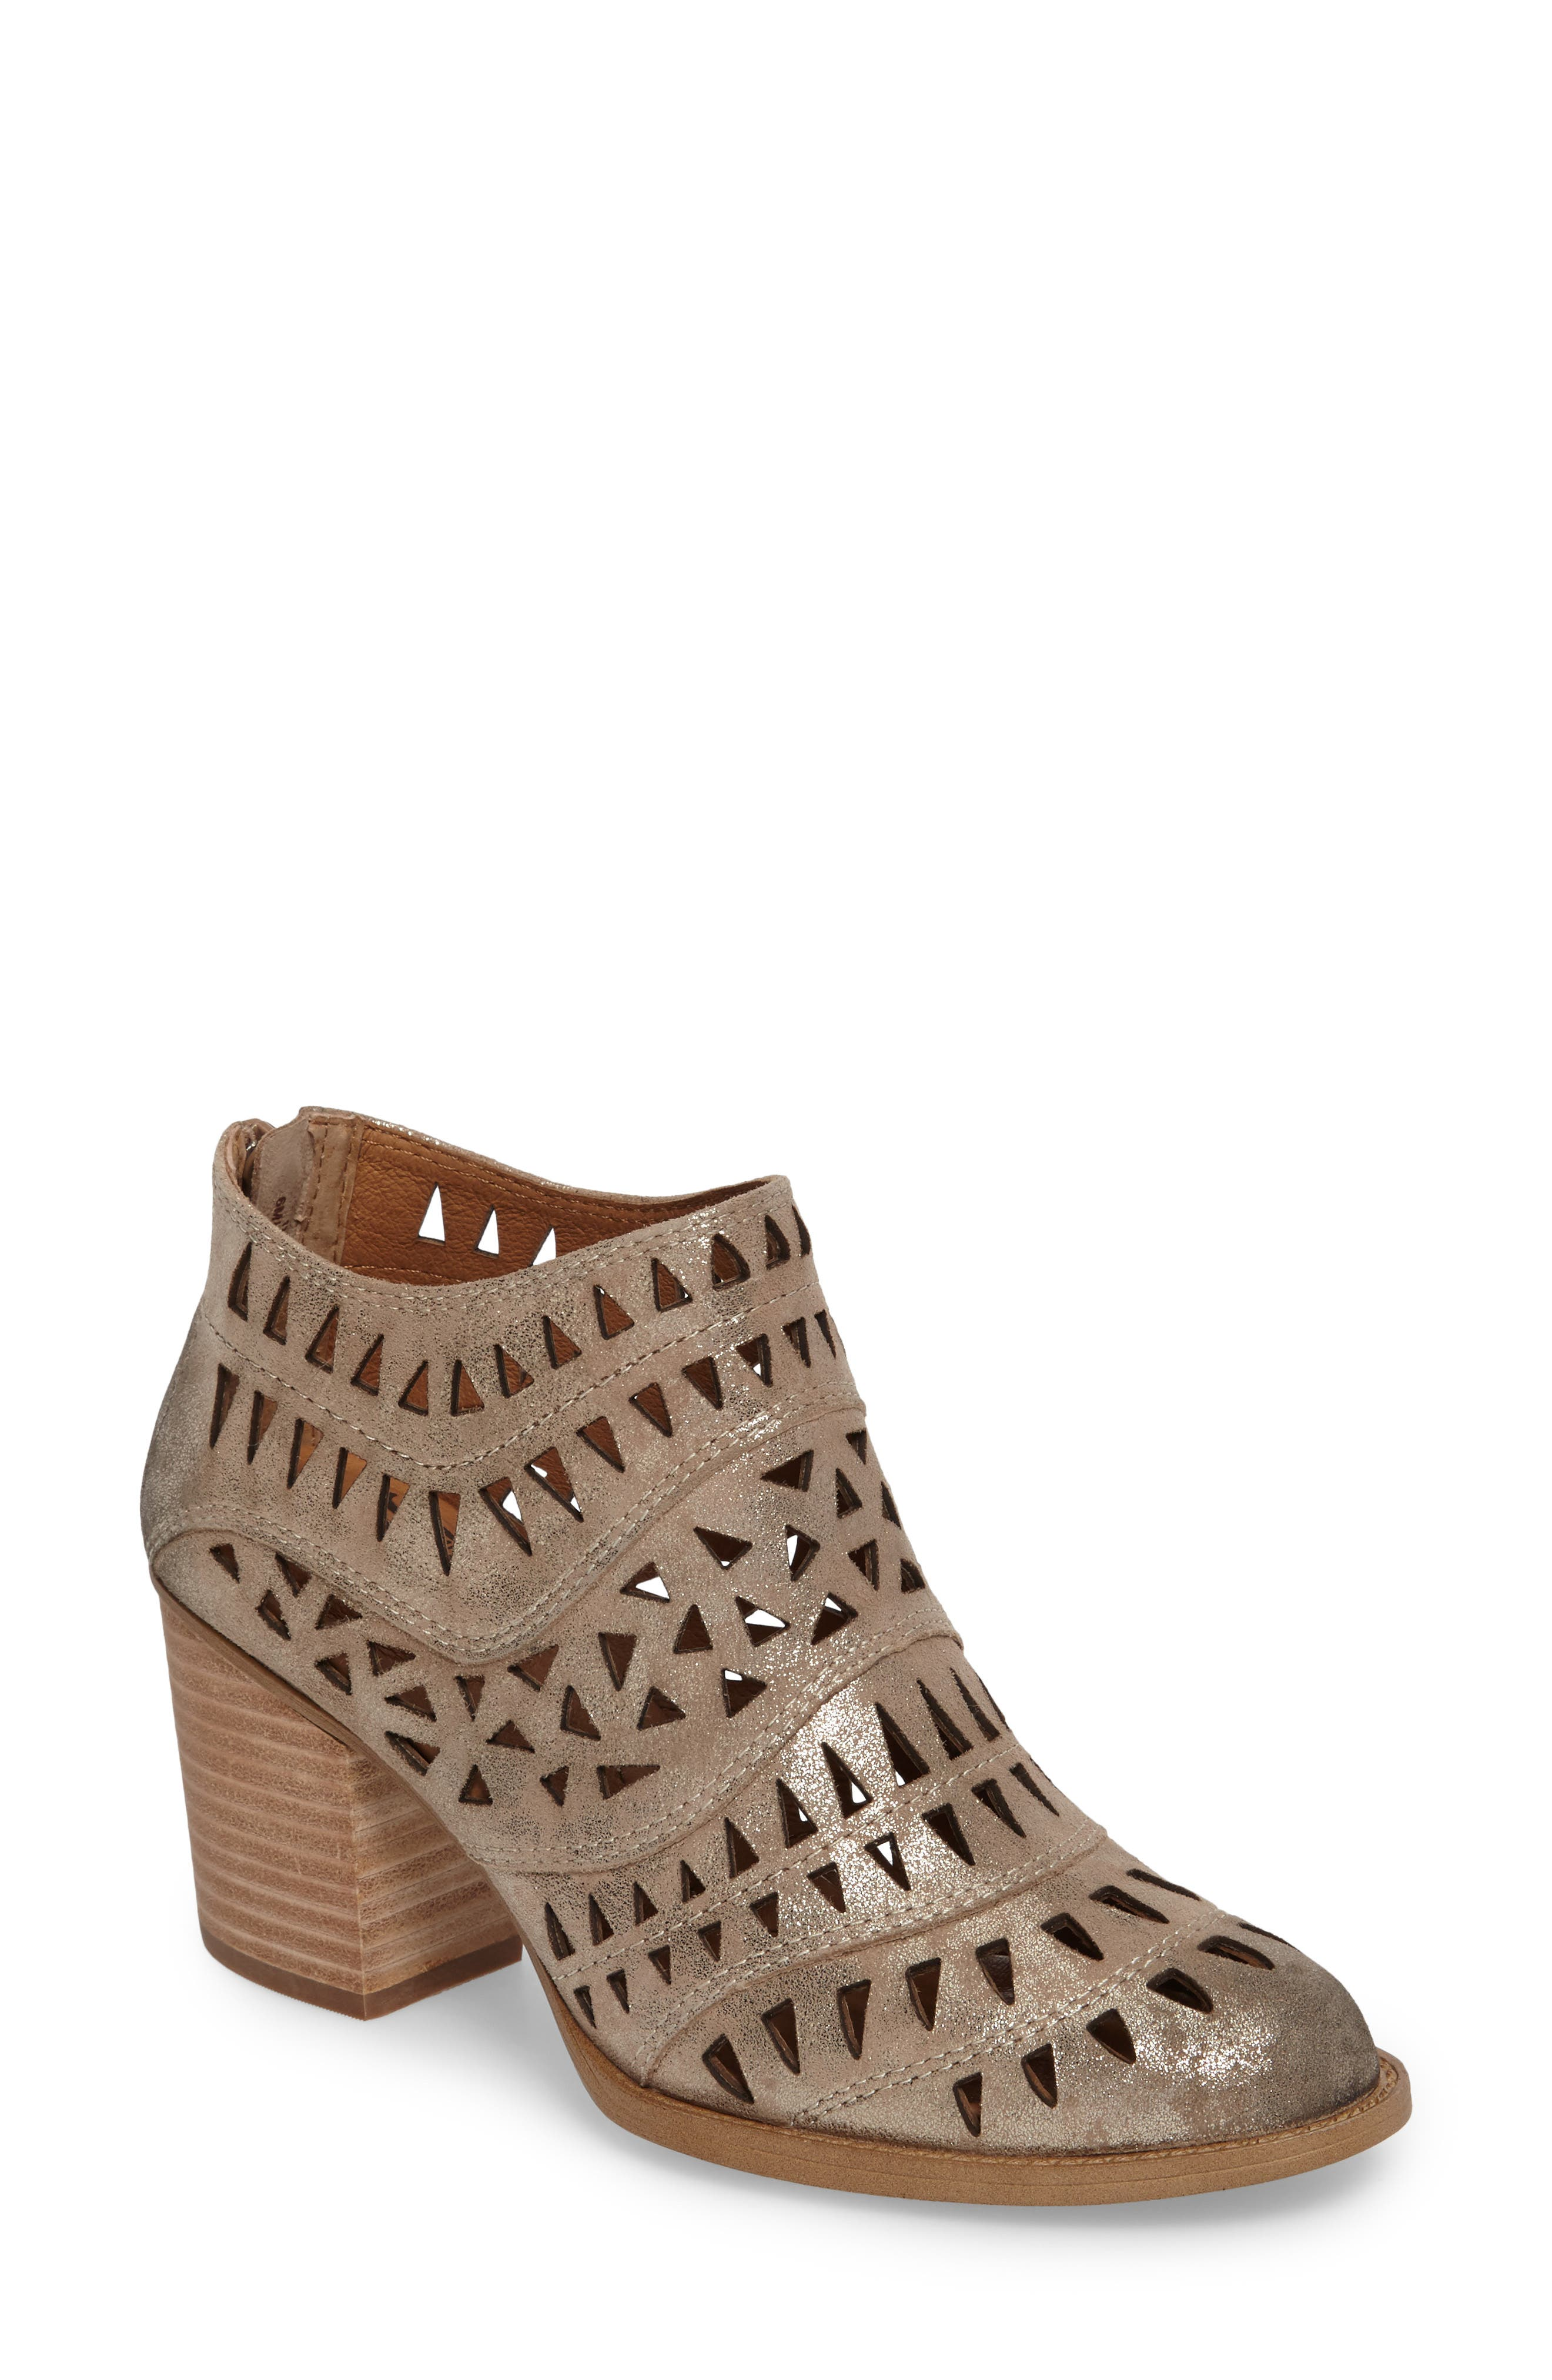 Westwood Laser Cut Bootie,                             Main thumbnail 1, color,                             Anthracite Distressed Foil